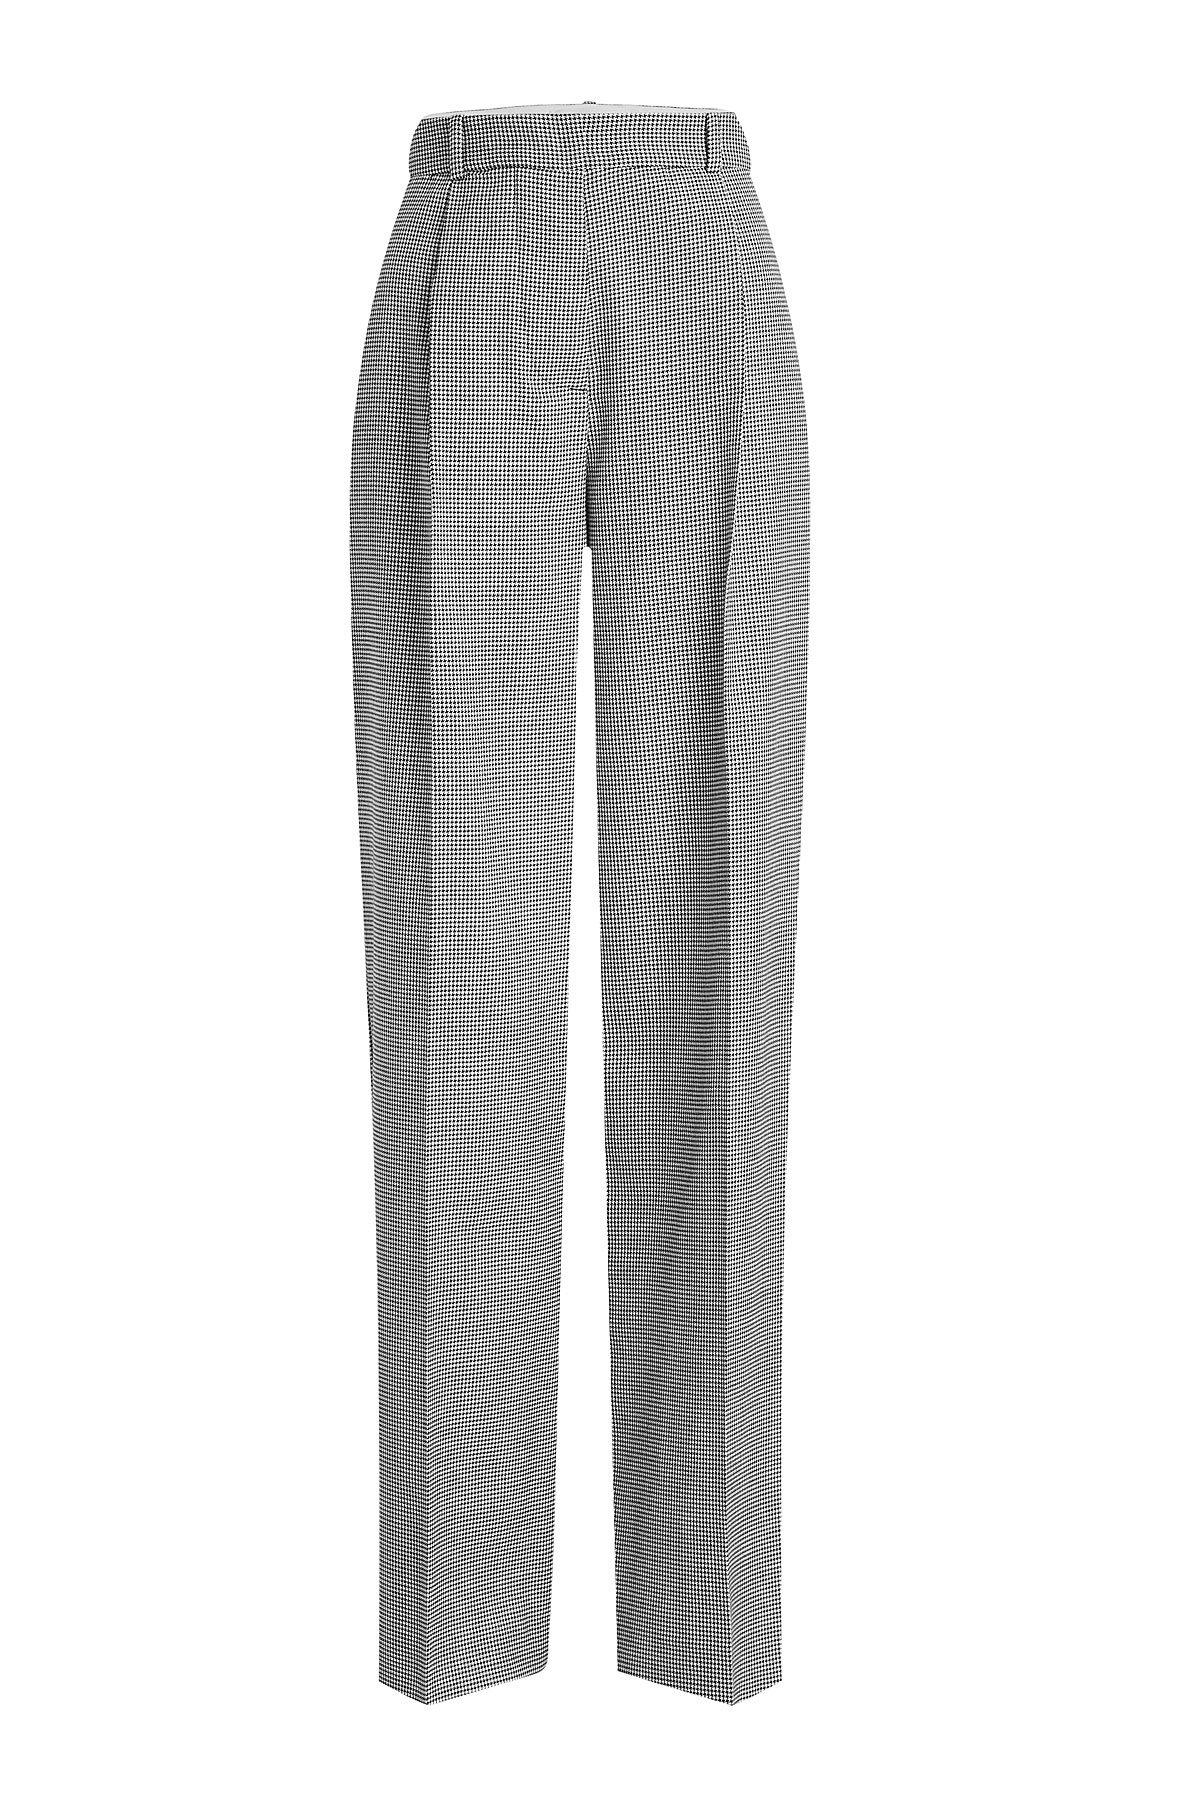 Victoria Beckham Printed Wool Wide-Leg Pants In Multicolored